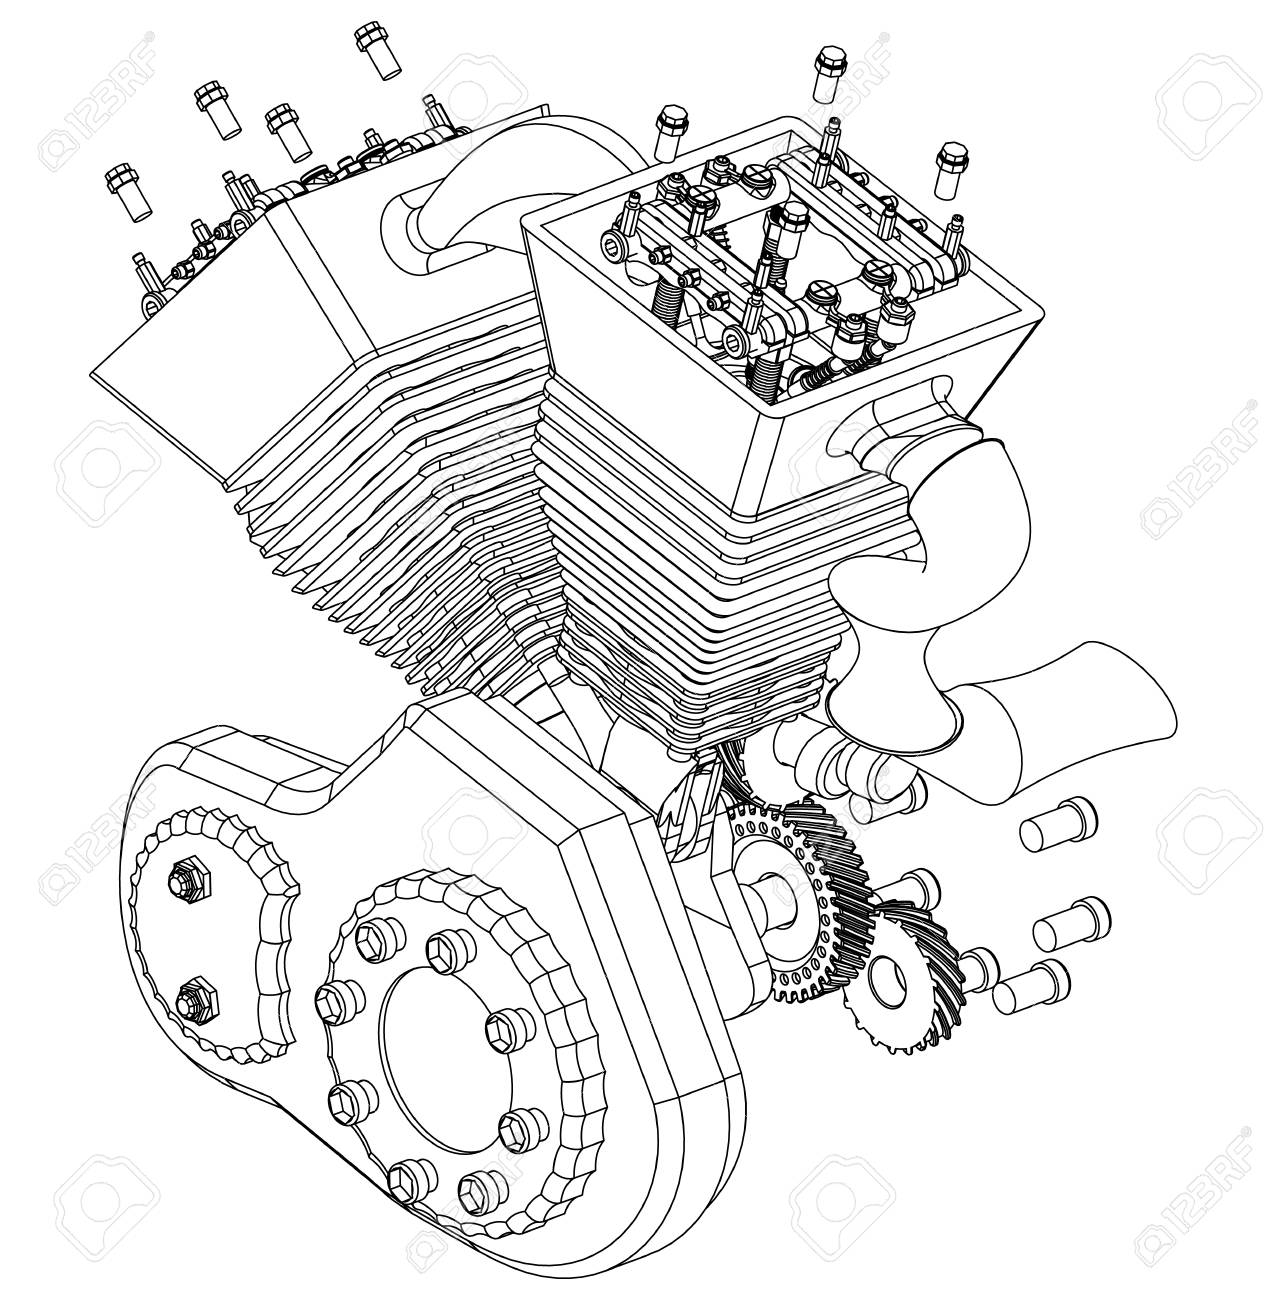 hight resolution of motorcycle engine on a white background drawing stock vector 118029191